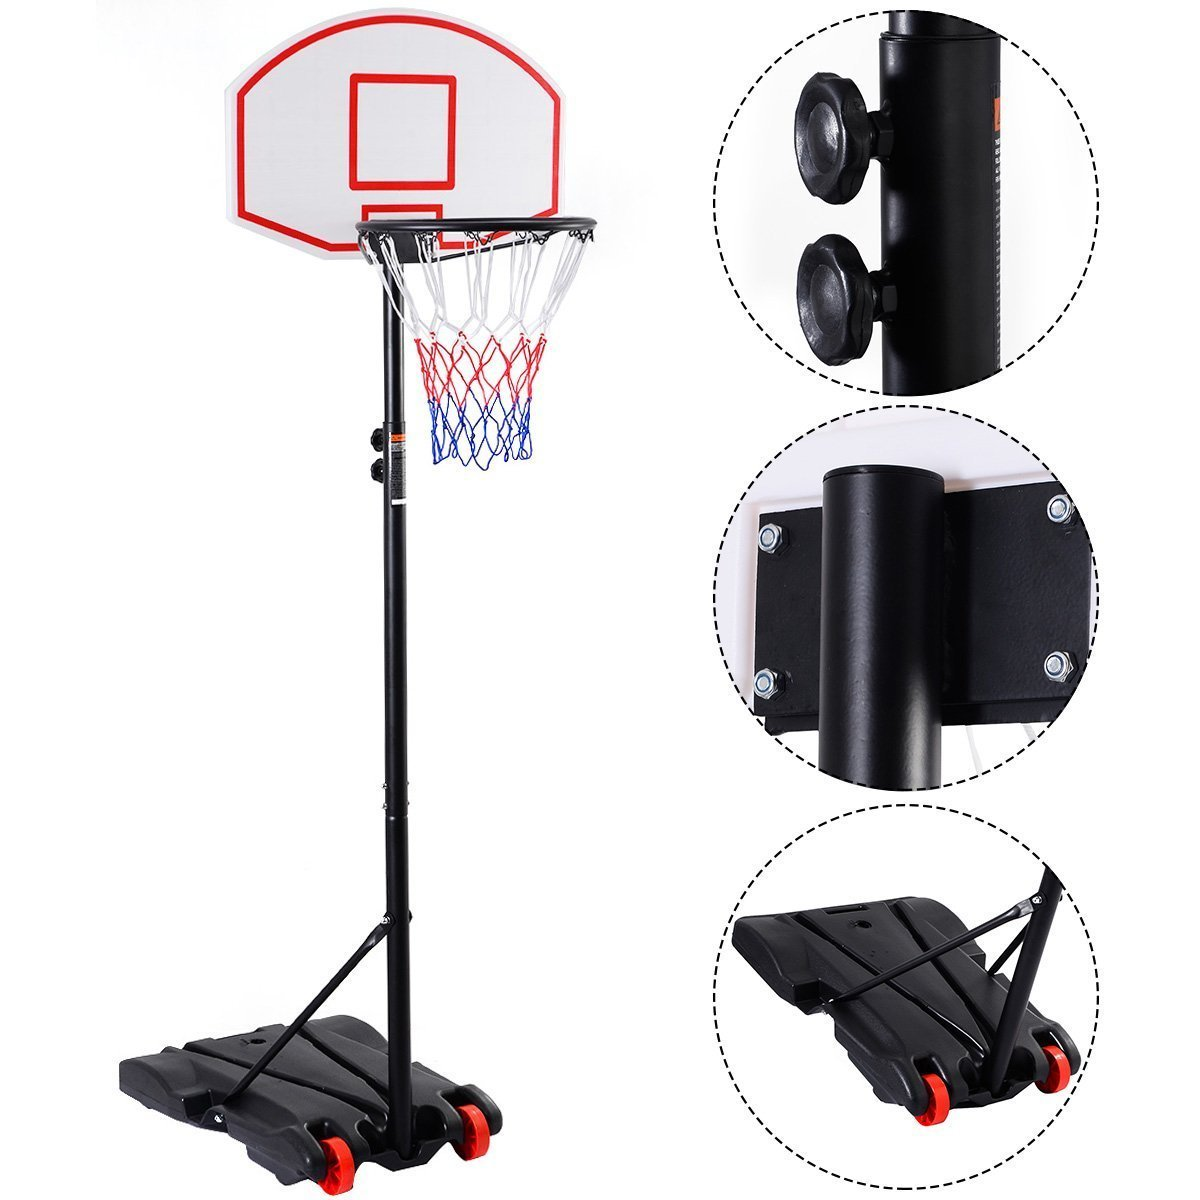 Amazon.com : Giantex Adjustable Basketball Hoop System Stand Kid ...